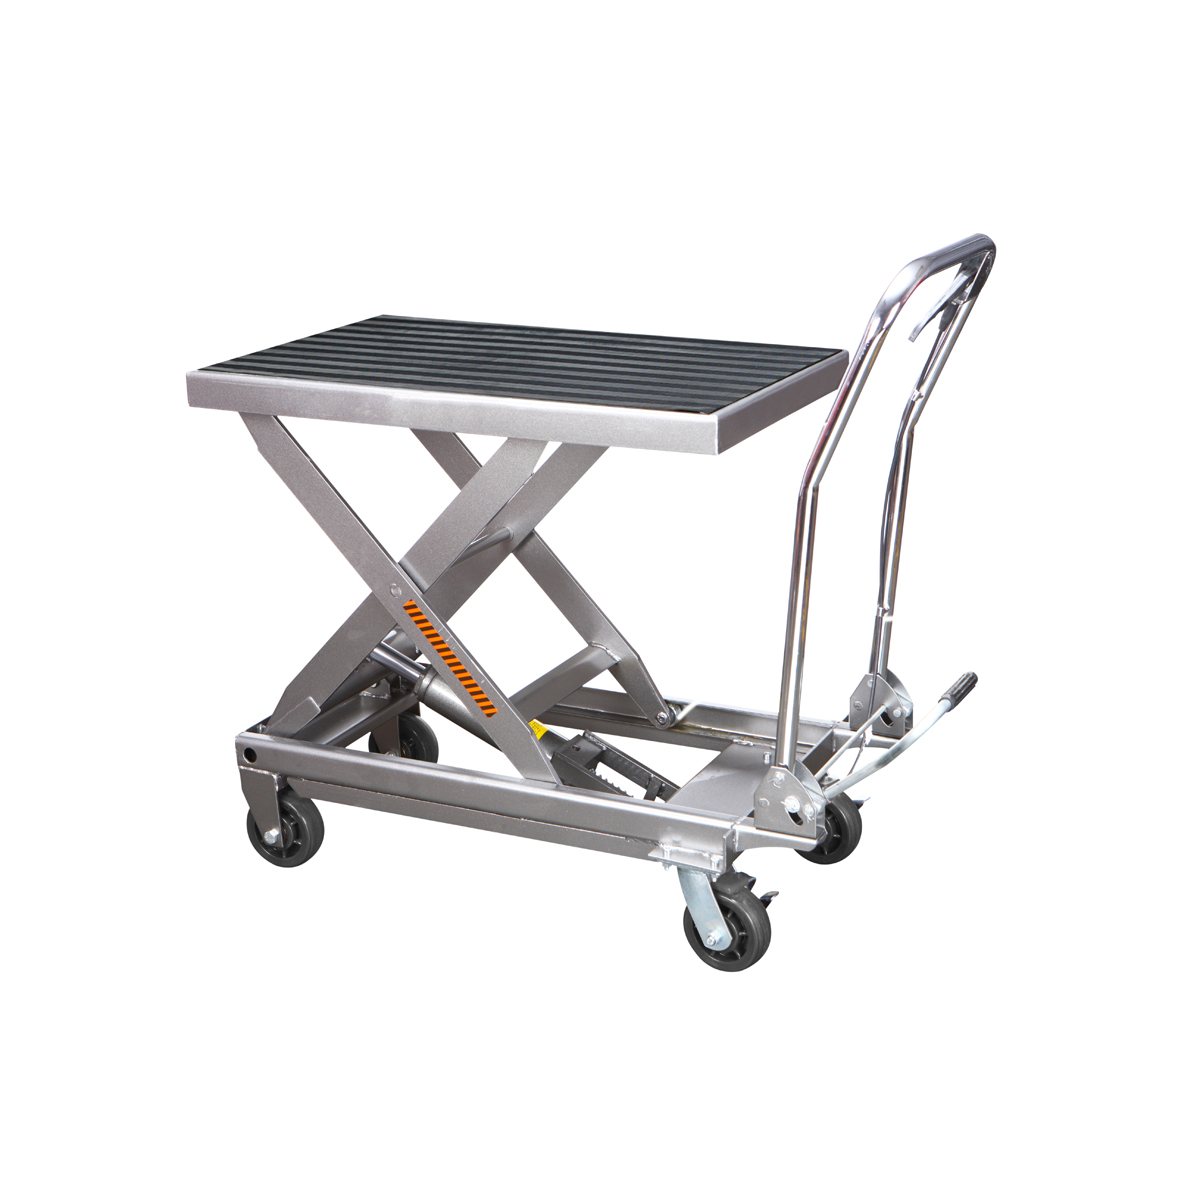 1000 lbs capacity hydraulic table cart